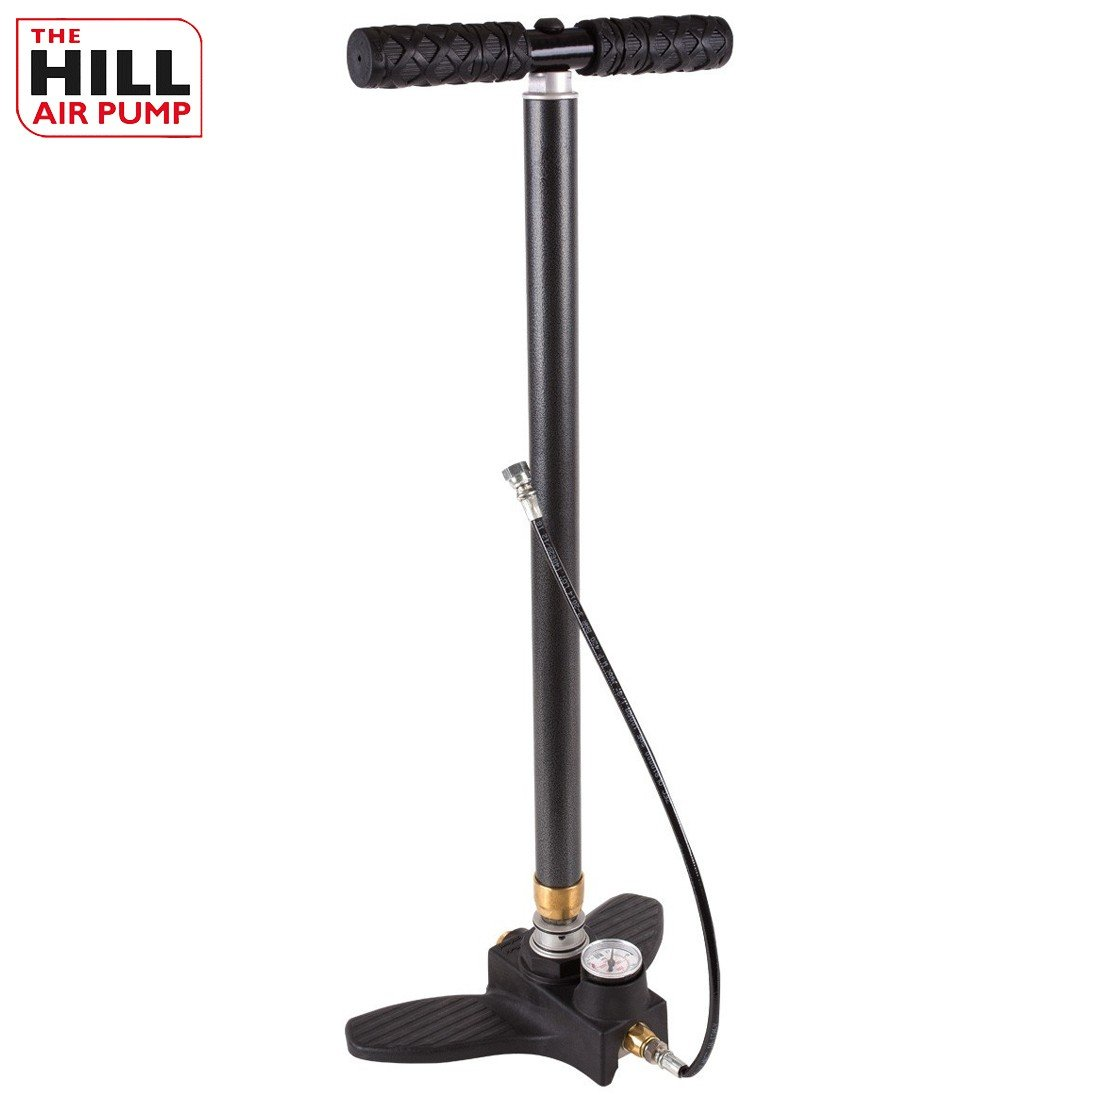 HILL MK4 PCP Air Pump